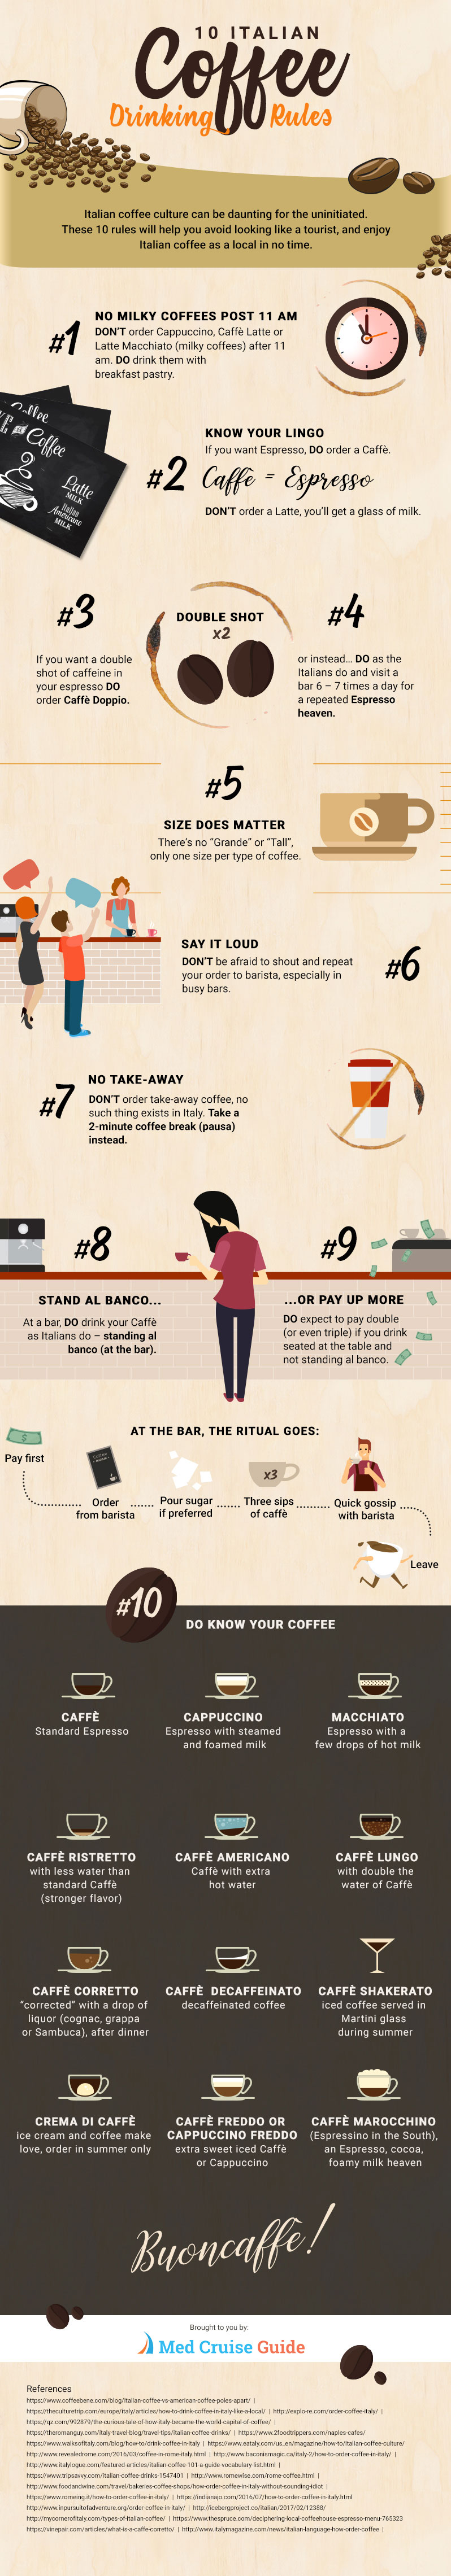 Infographic-10-Italian-Coffee-Drinking-Rules